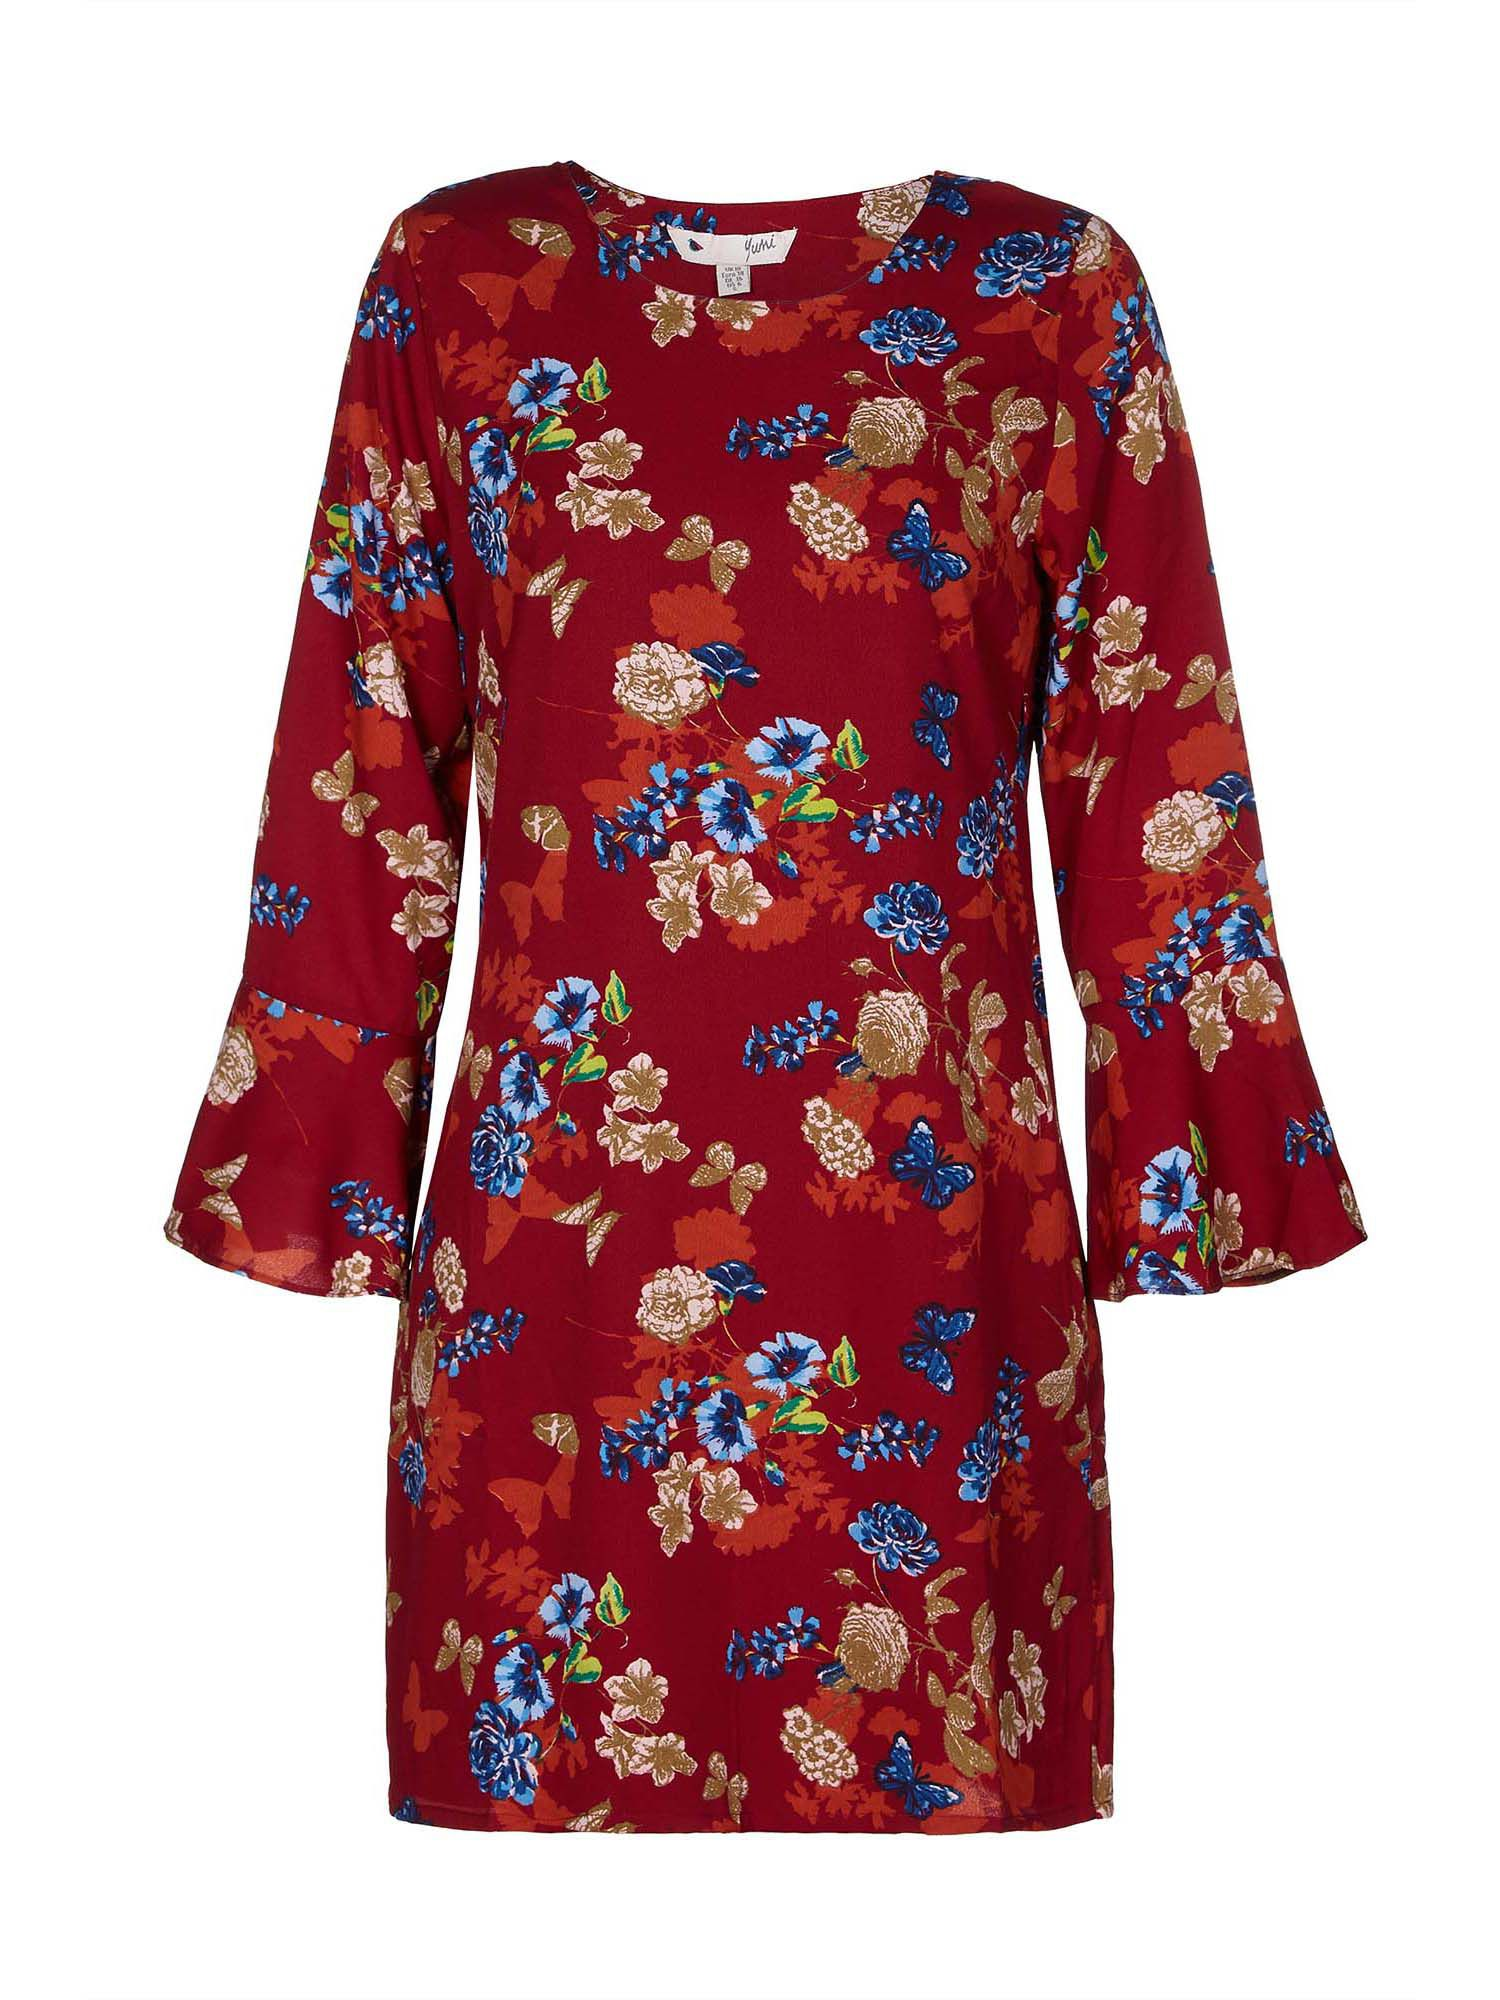 Yumi Curves Butterfly And Flower Print Tunic Dress, Orange